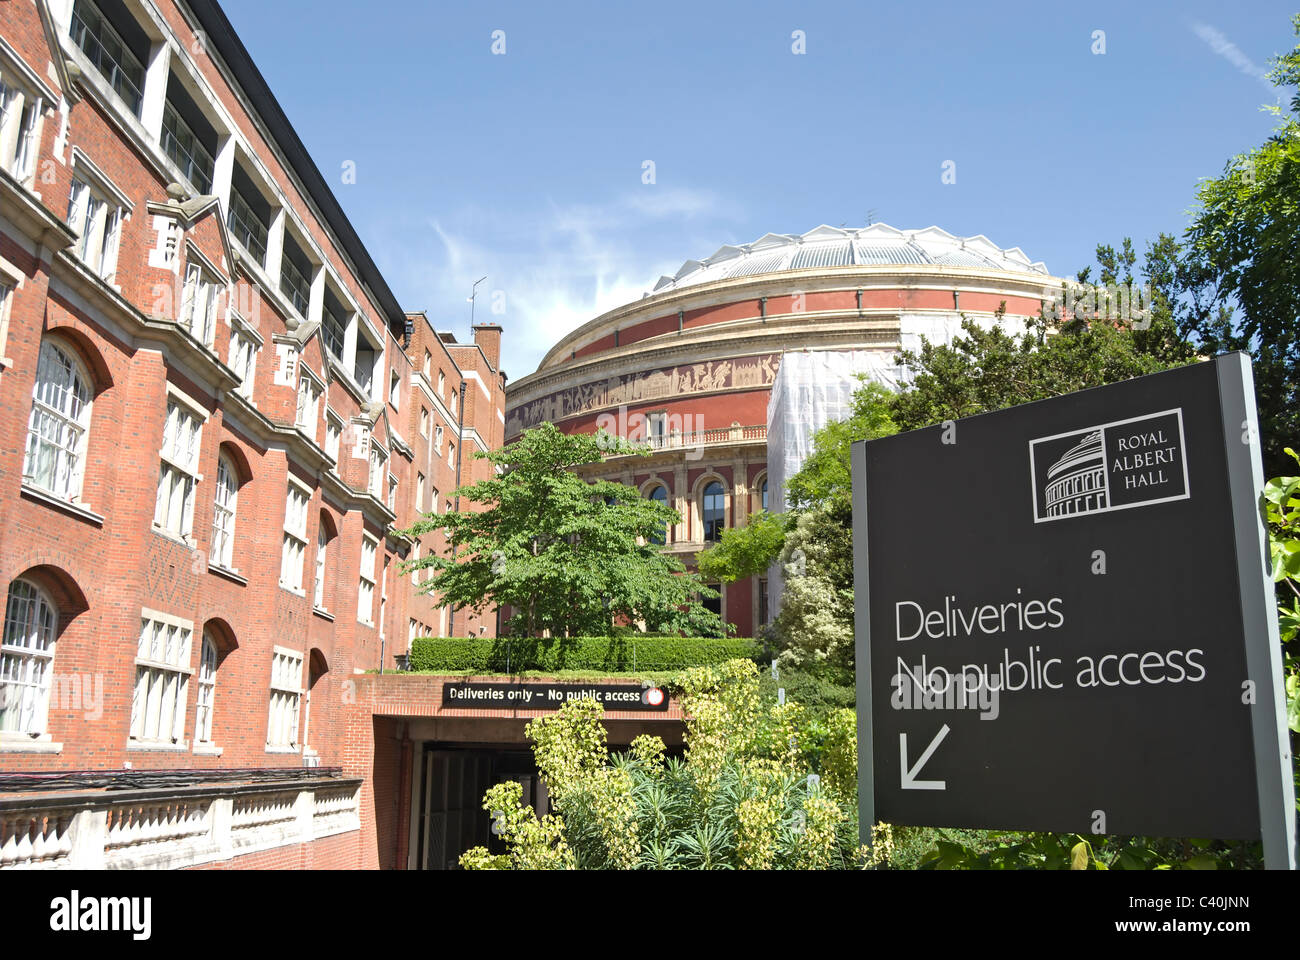 deliveries no public access sign at the rear of the royal albert hall, london, england - Stock Image